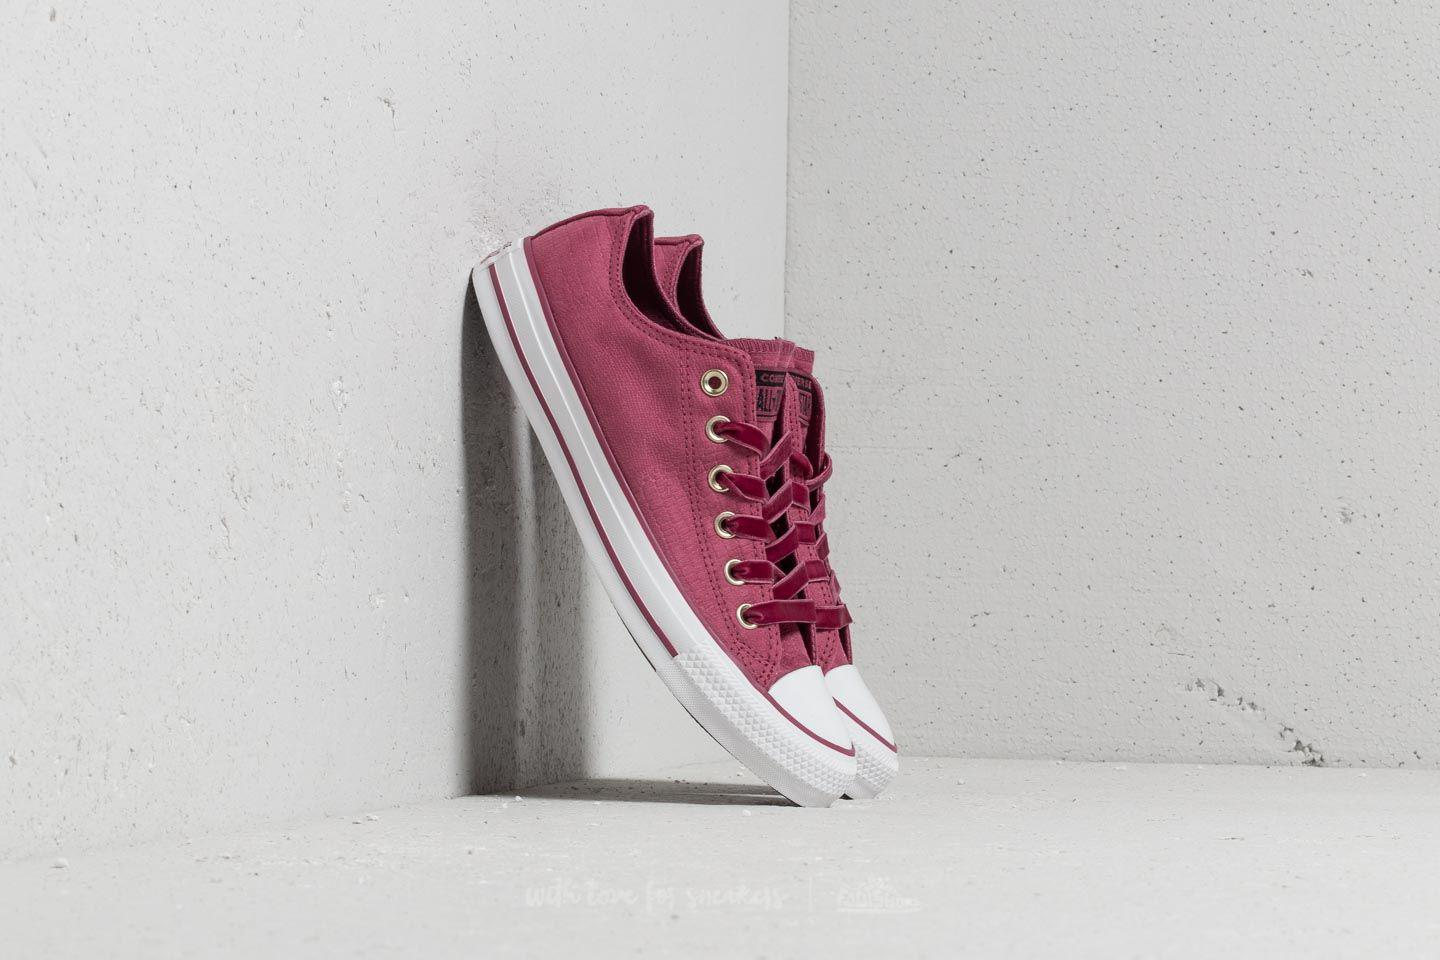 753450e61b7d Lyst - Converse Chuck Taylor All Star Ox Vintage Wine  Vintage Wine